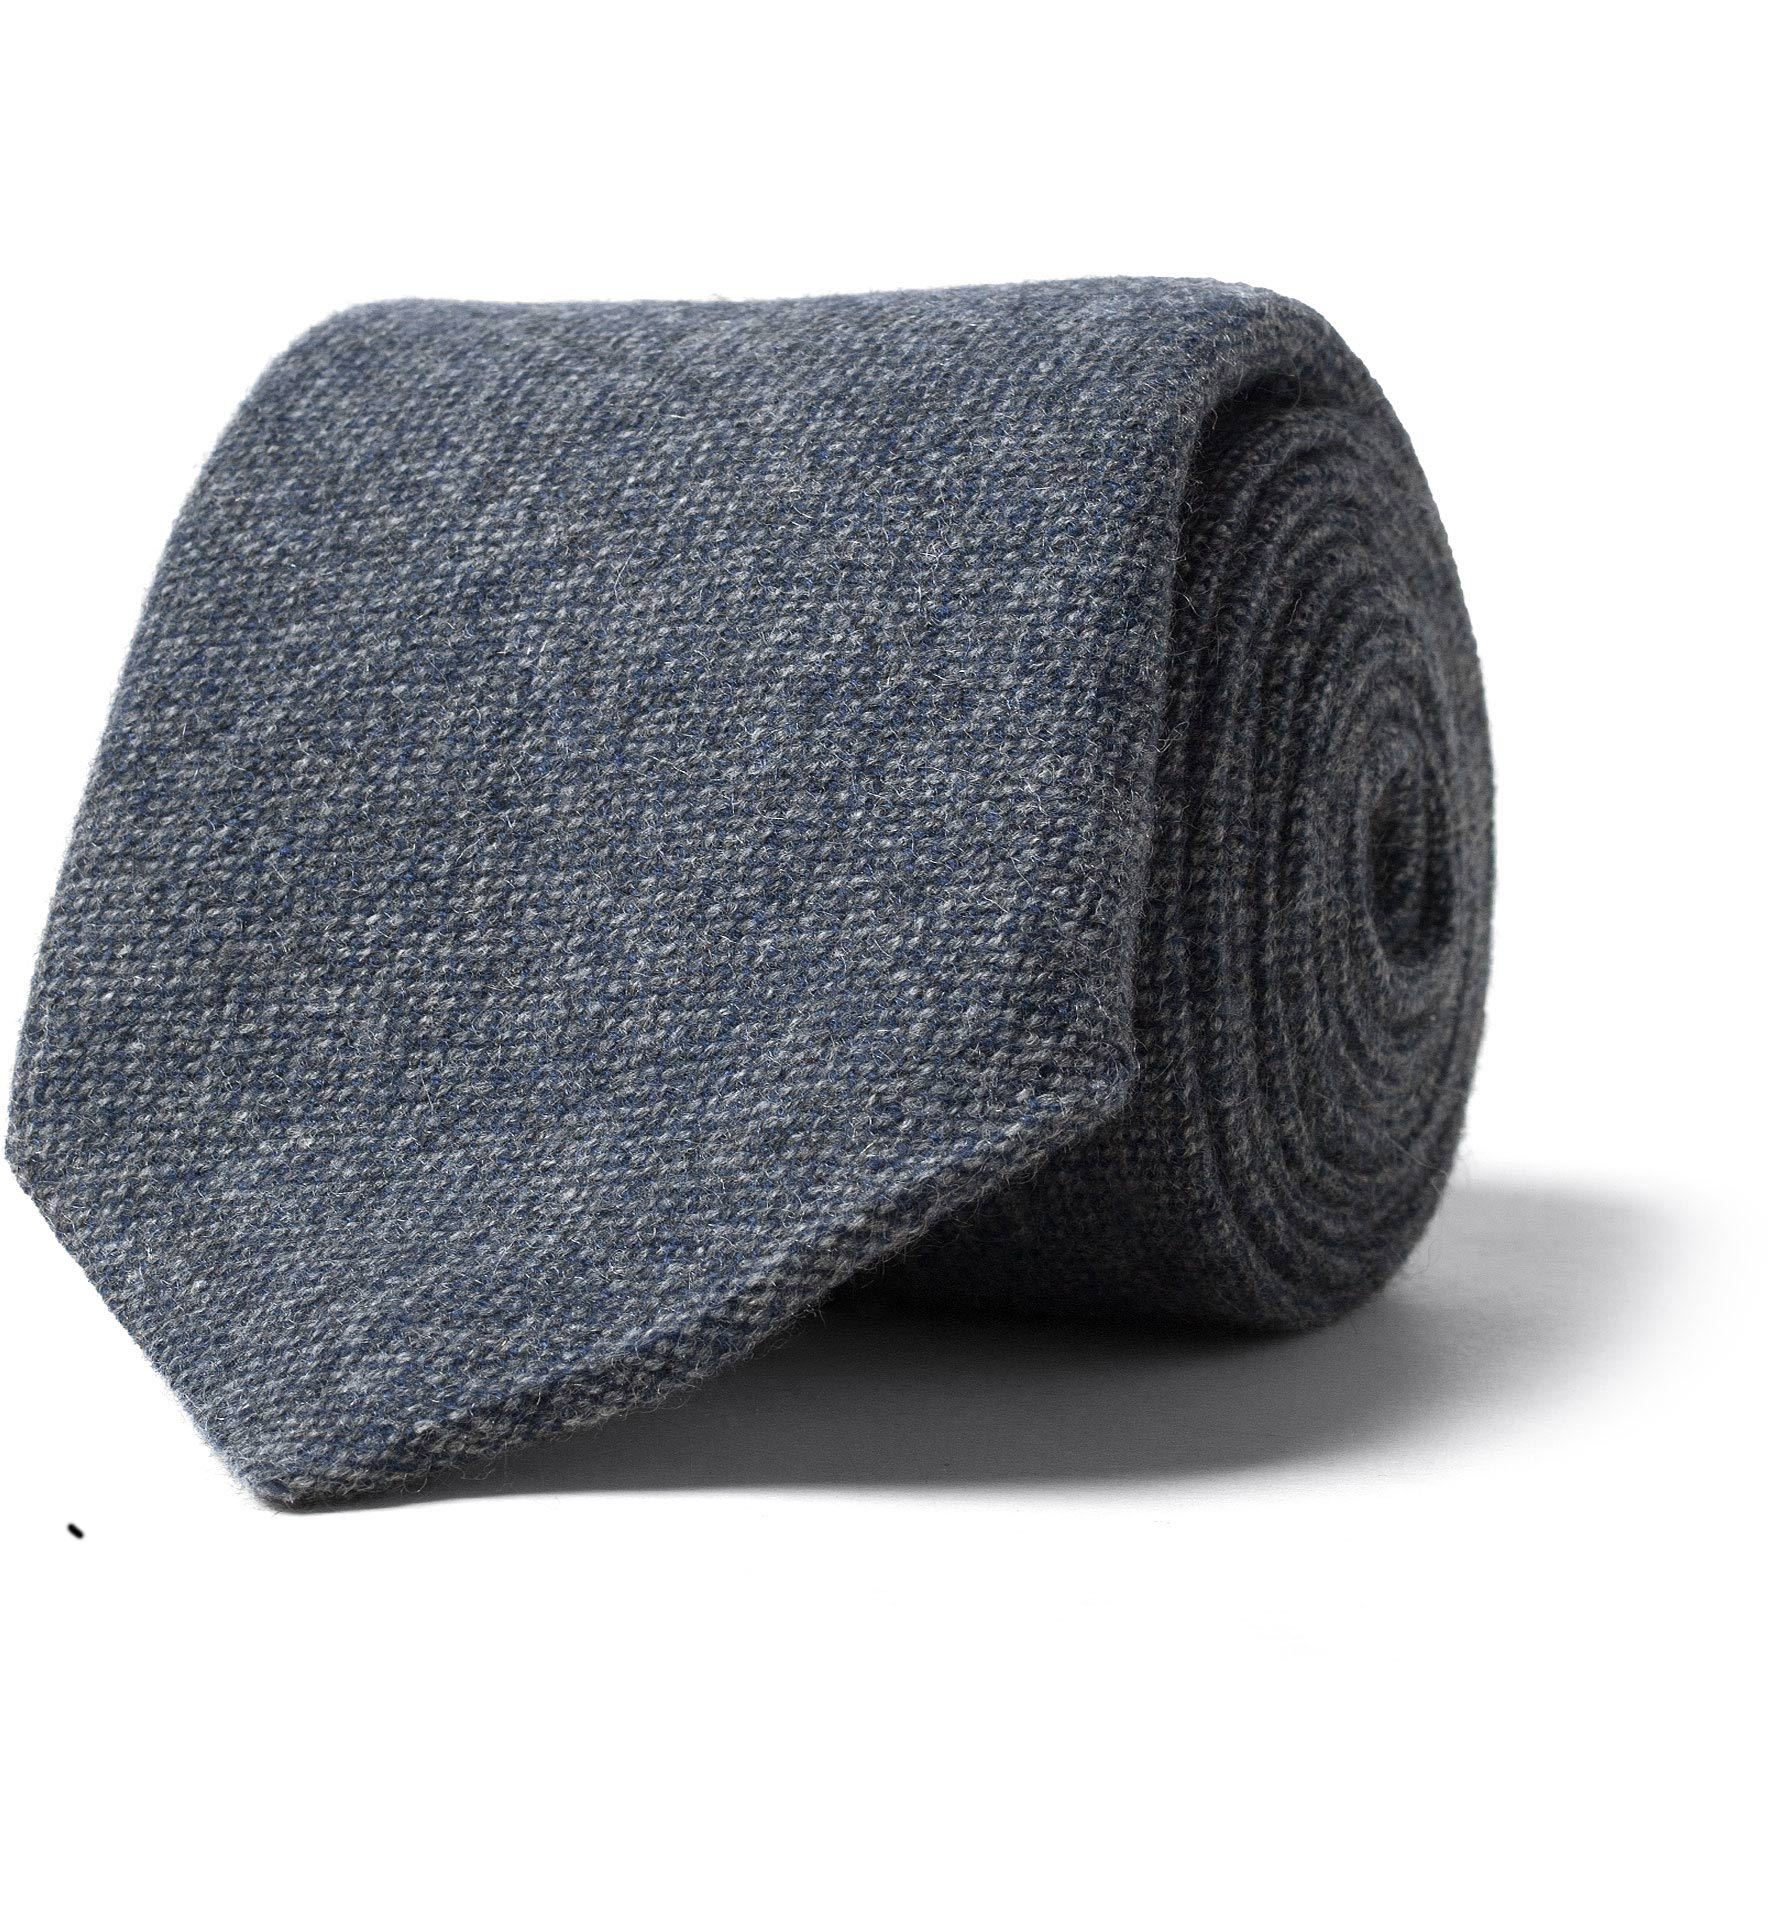 Zoom Image of Slate Pure Cashmere Tie